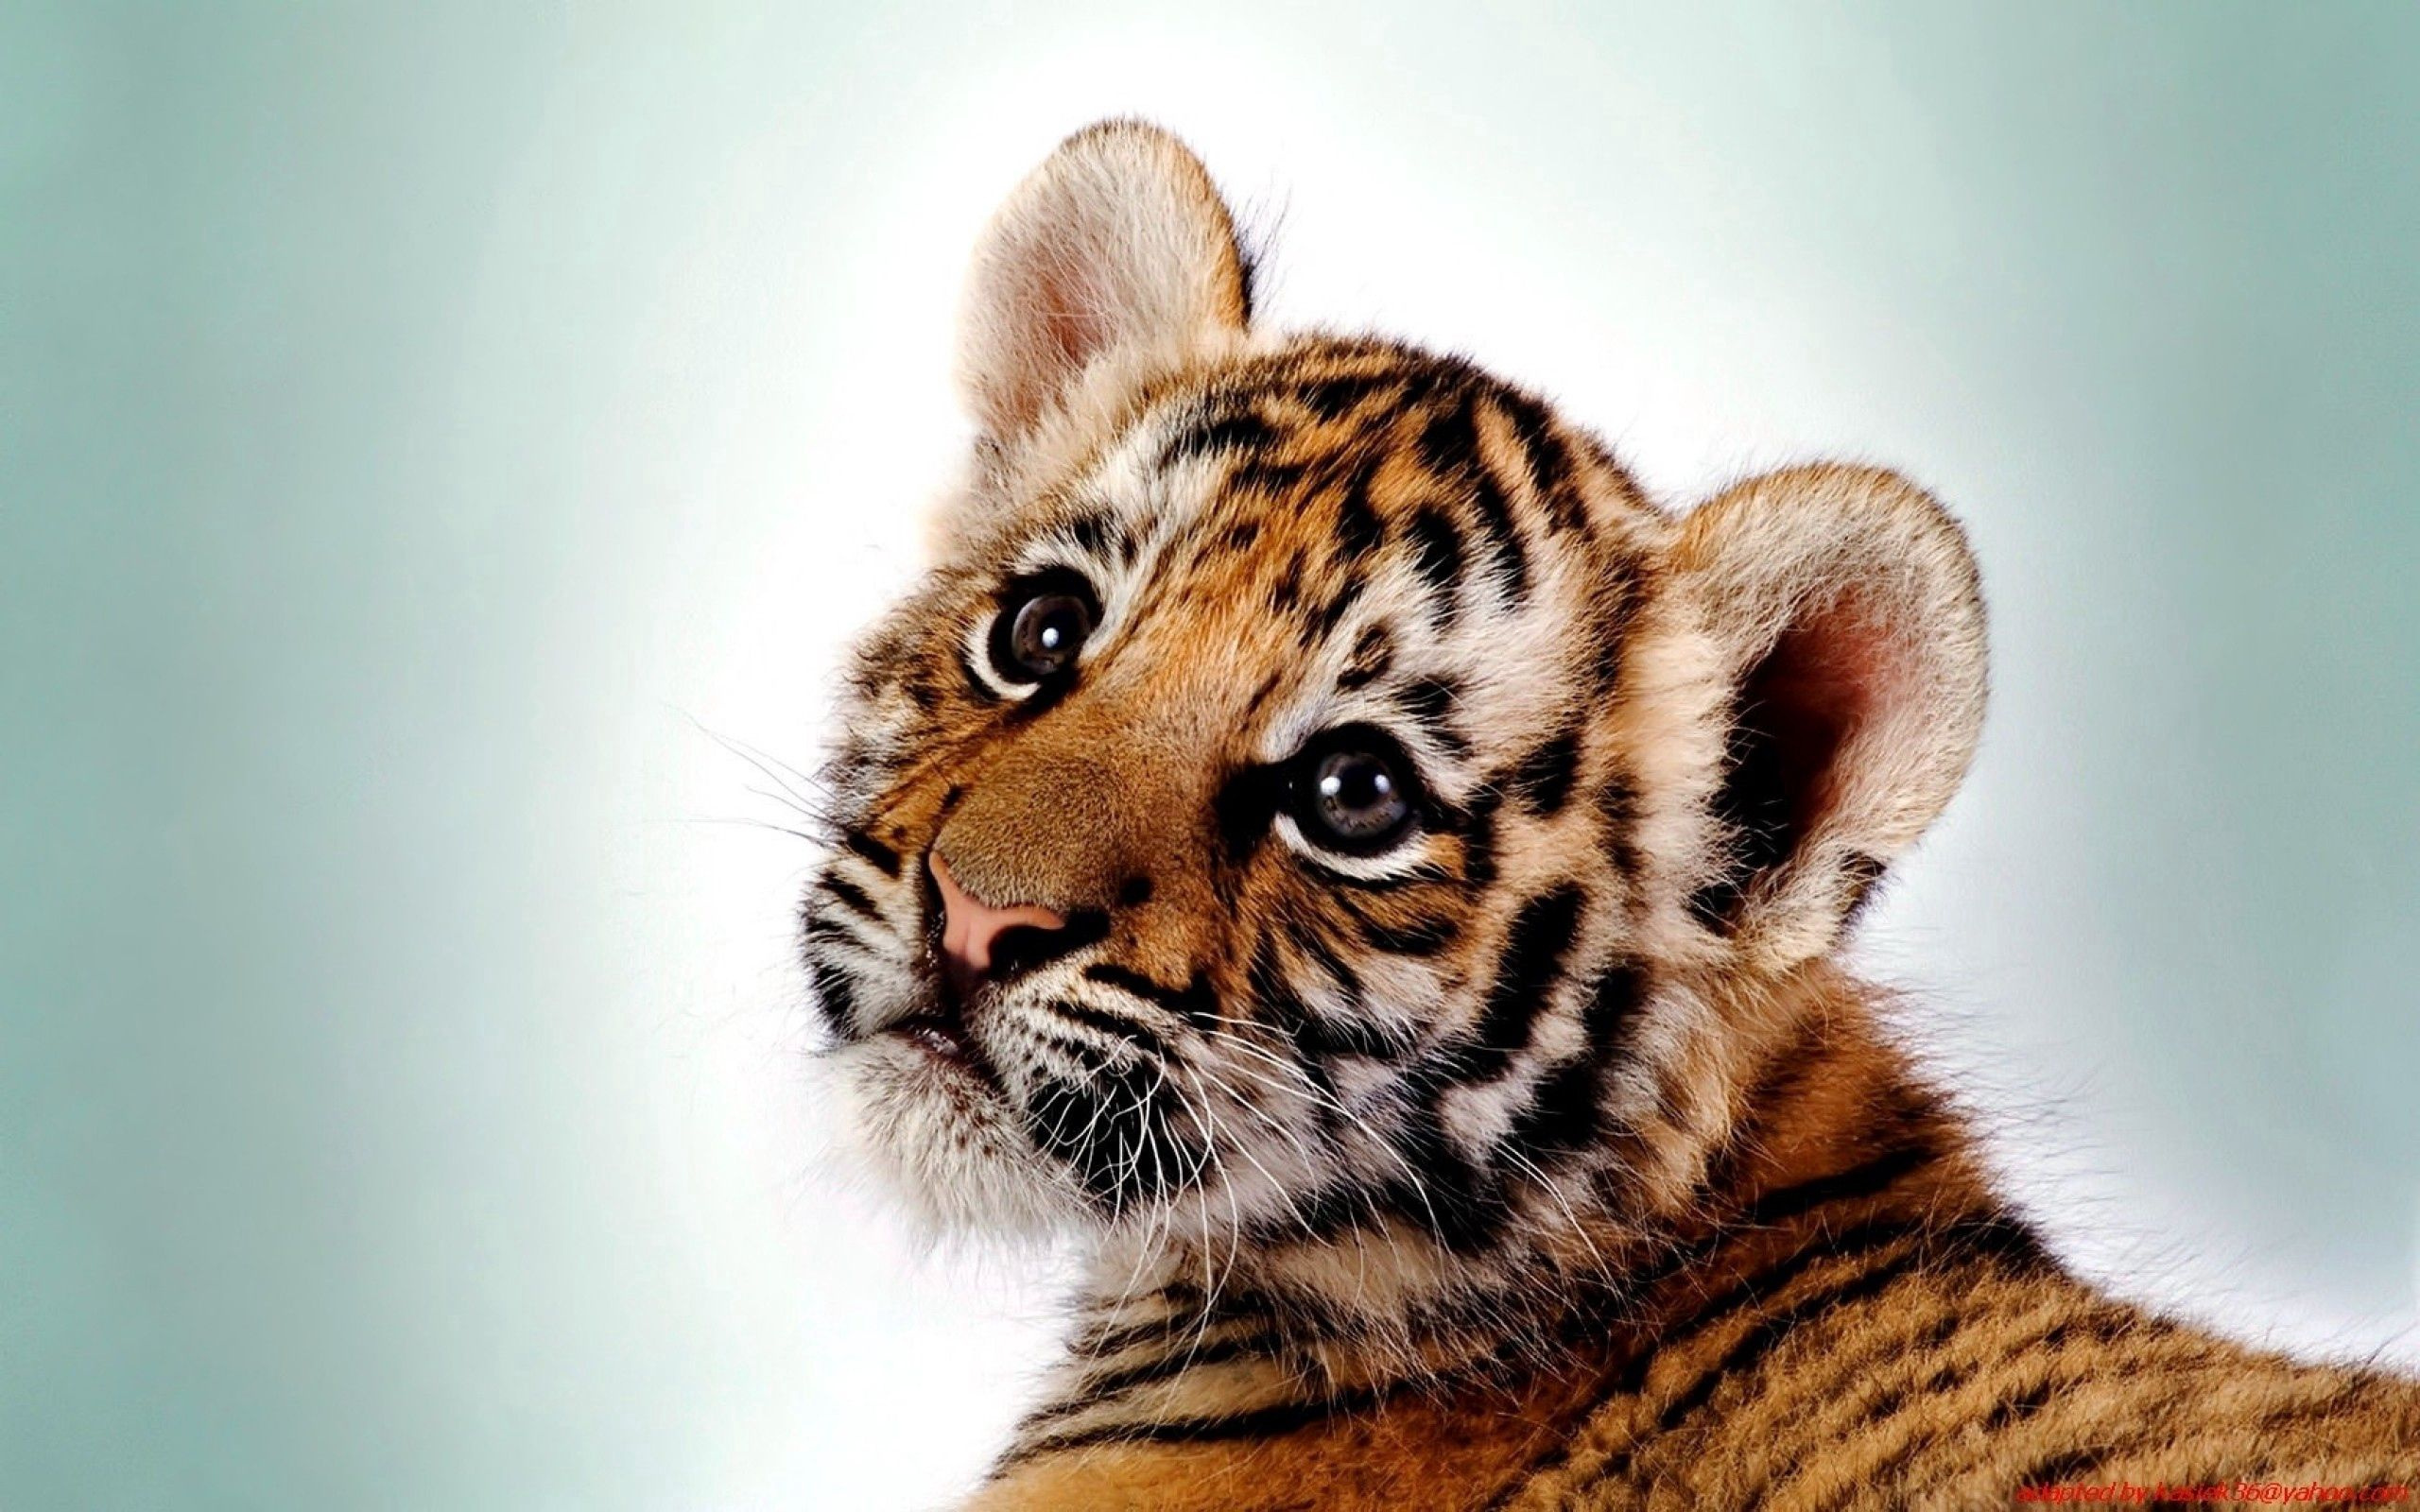 55735 Screensavers and Wallpapers Kitten for phone. Download Tiger, Animals, Young, Kitty, Kitten, Predator, Big Cat, Joey pictures for free